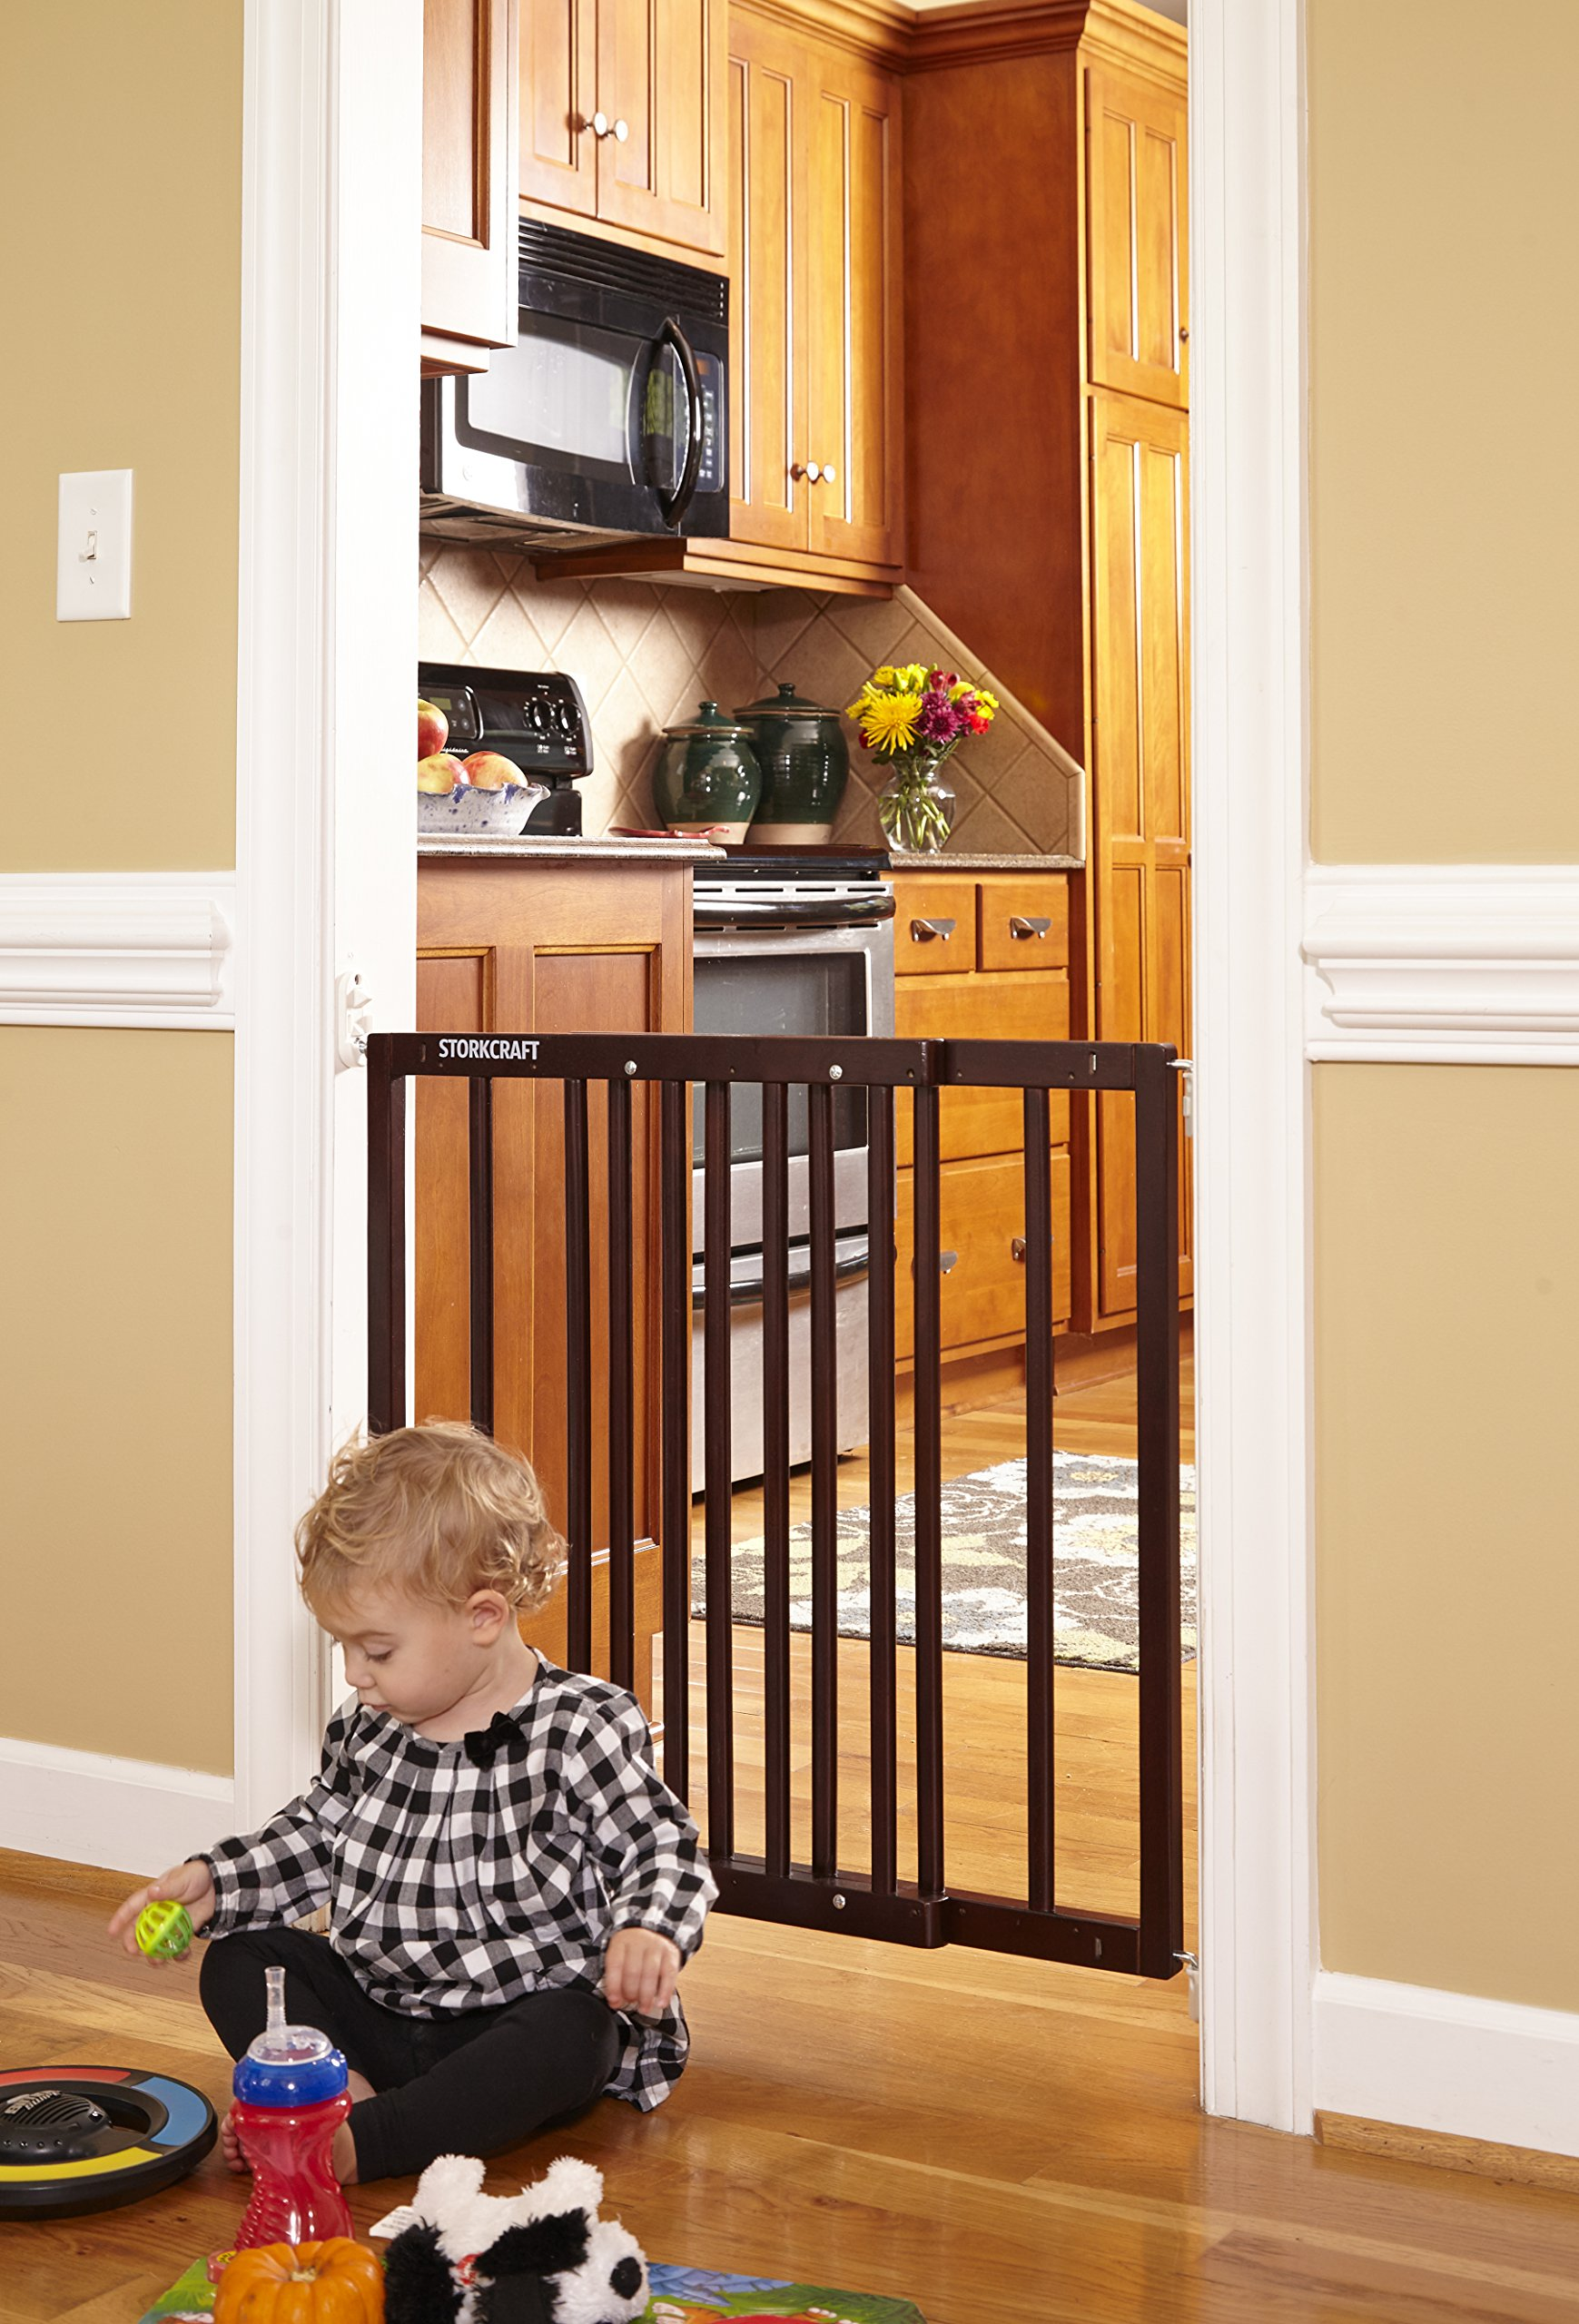 Storkcraft Easy Walk-Thru Wooden Safety Gate, Espresso Adjustable Baby Safety Gate For Doorways and Stairs, Great for Children and Pets by Stork Craft (Image #5)